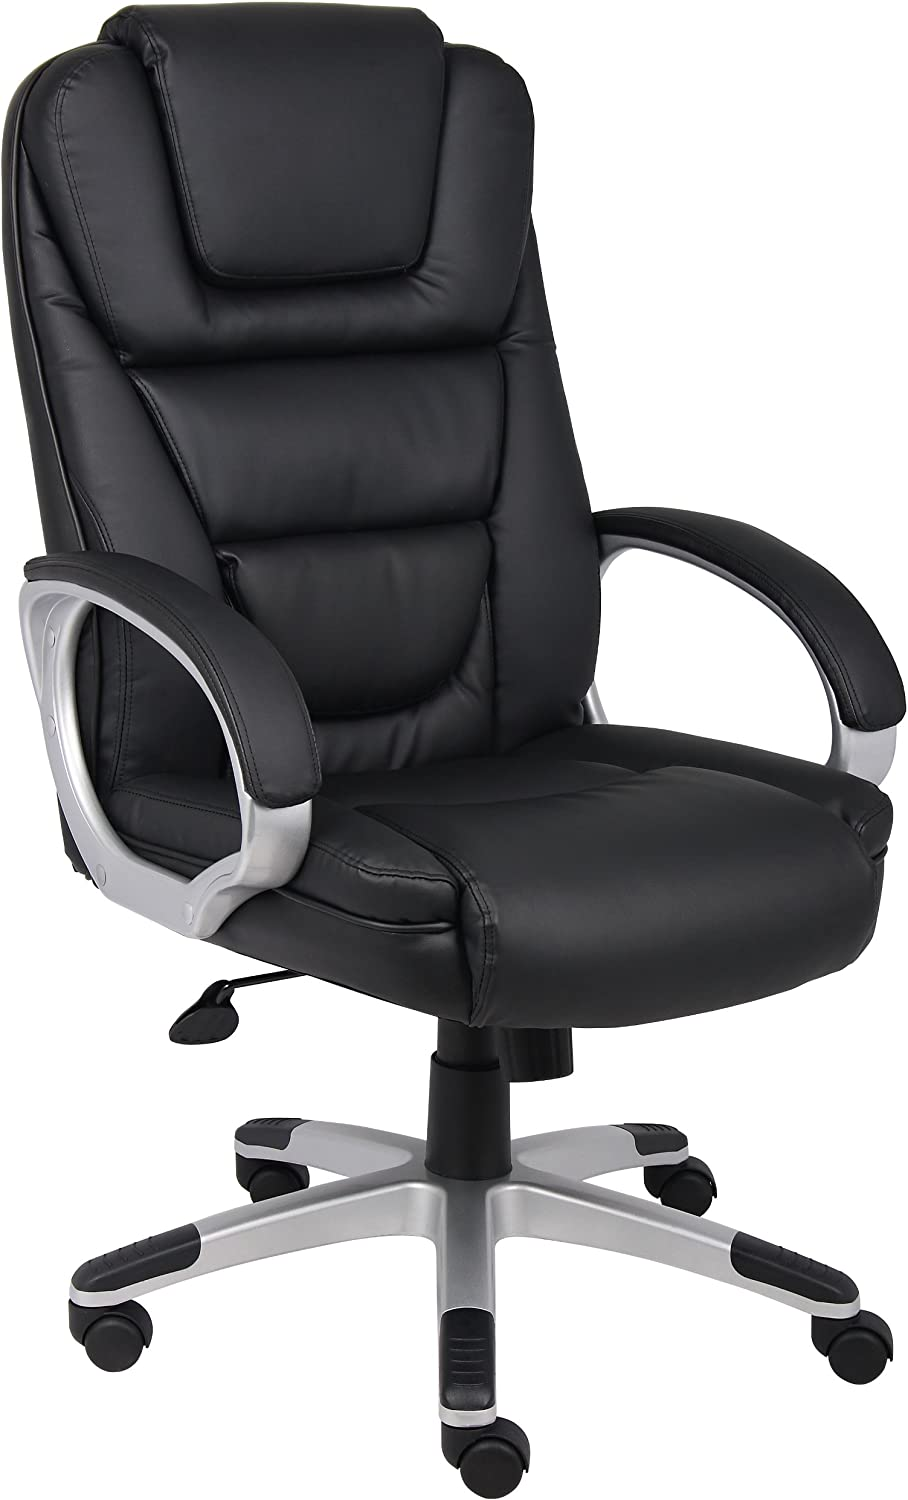 Boss Office Products High Back No Tools Required LeatherPlus Chair with Knee Tilt in Black